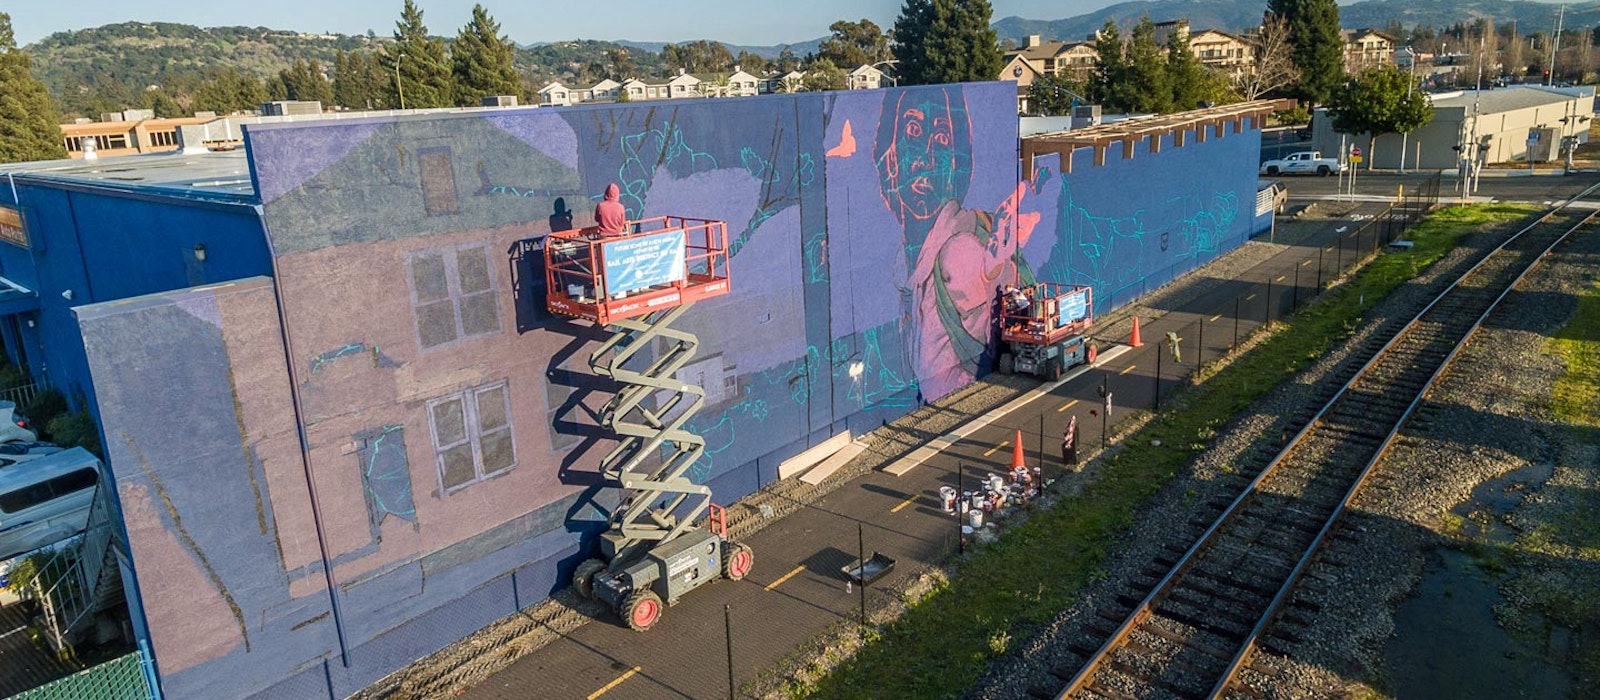 Napa's new arts district is bringing color to the city's rail corridor.